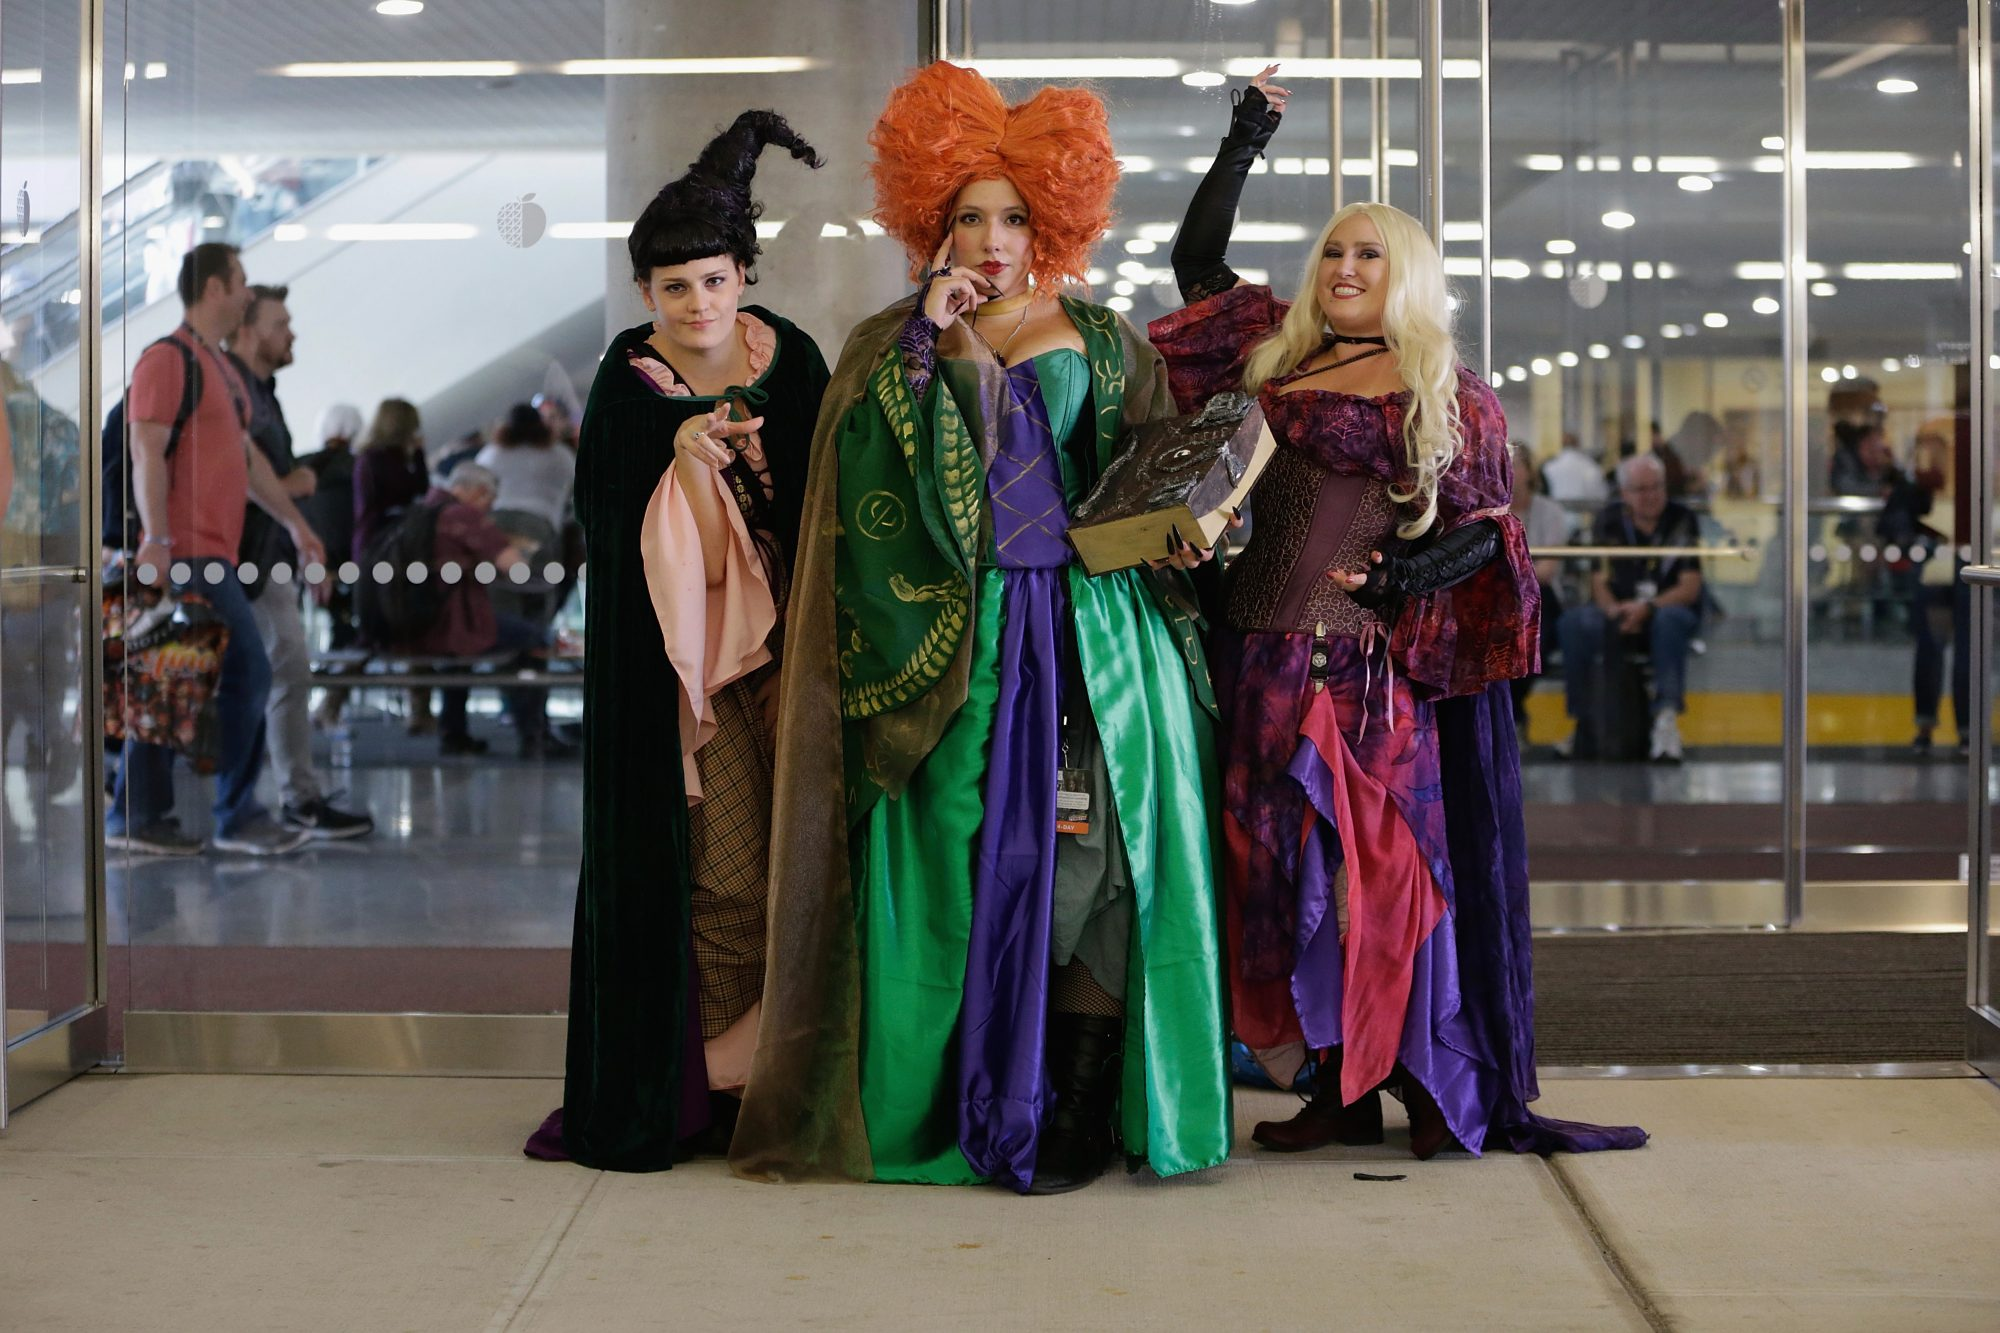 best halloween costumes for 3 people